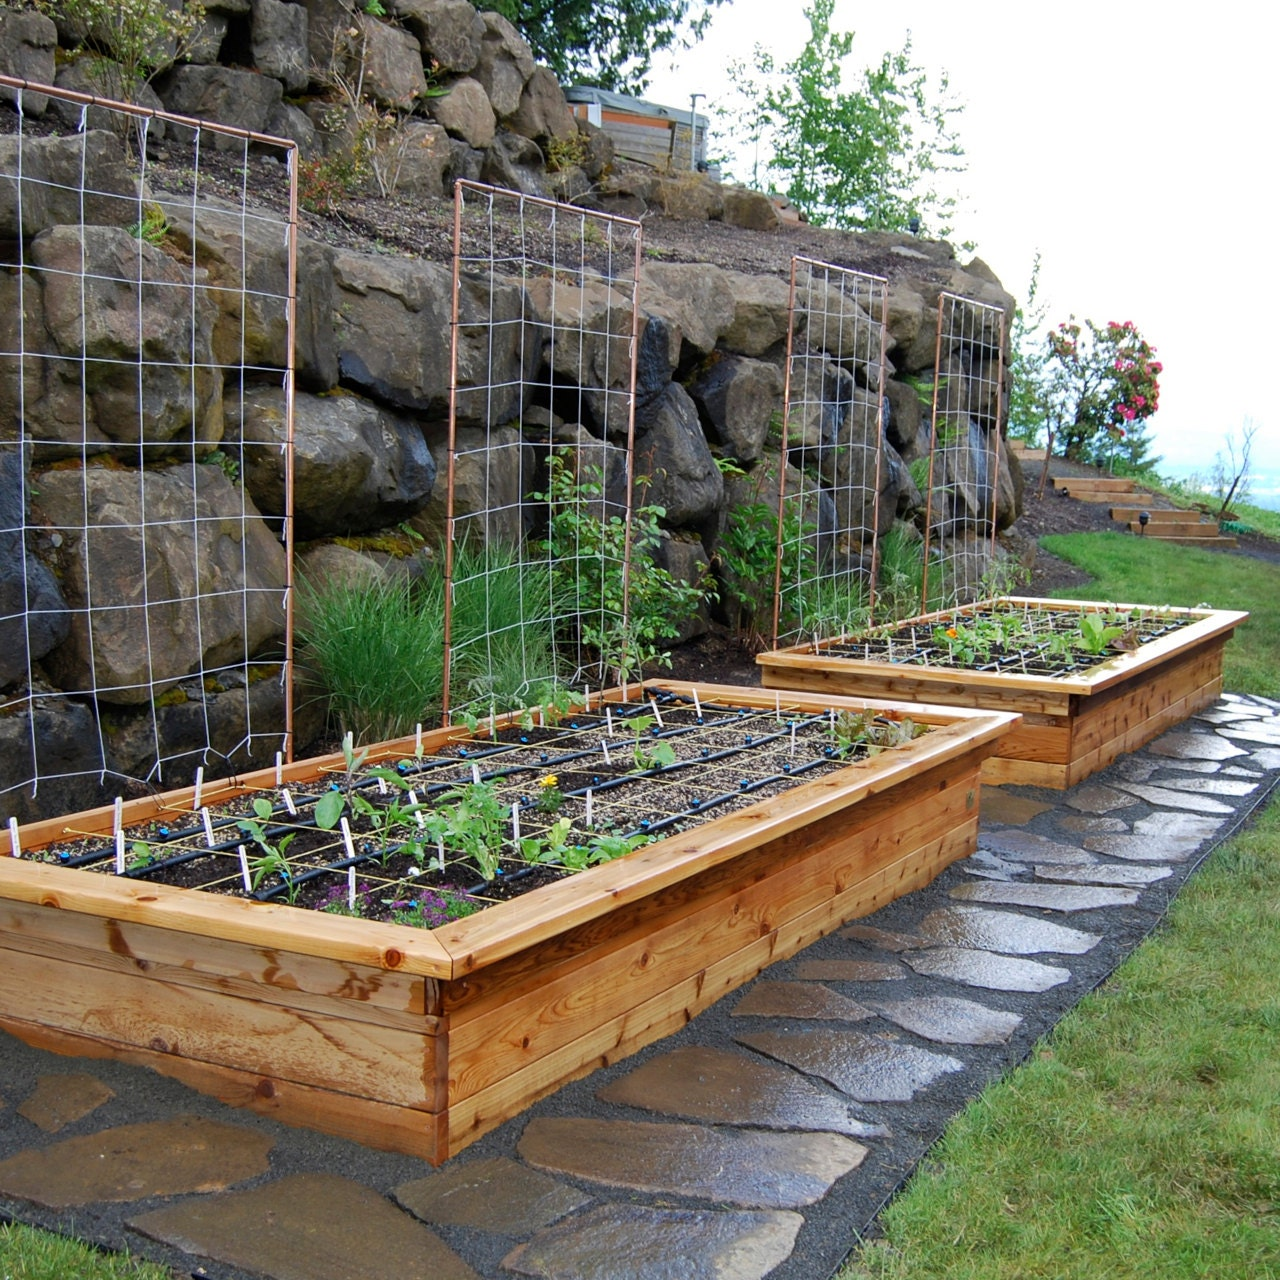 Unique Raised Bed Garden Ideas: Raised Bed Frame With Seats Plan